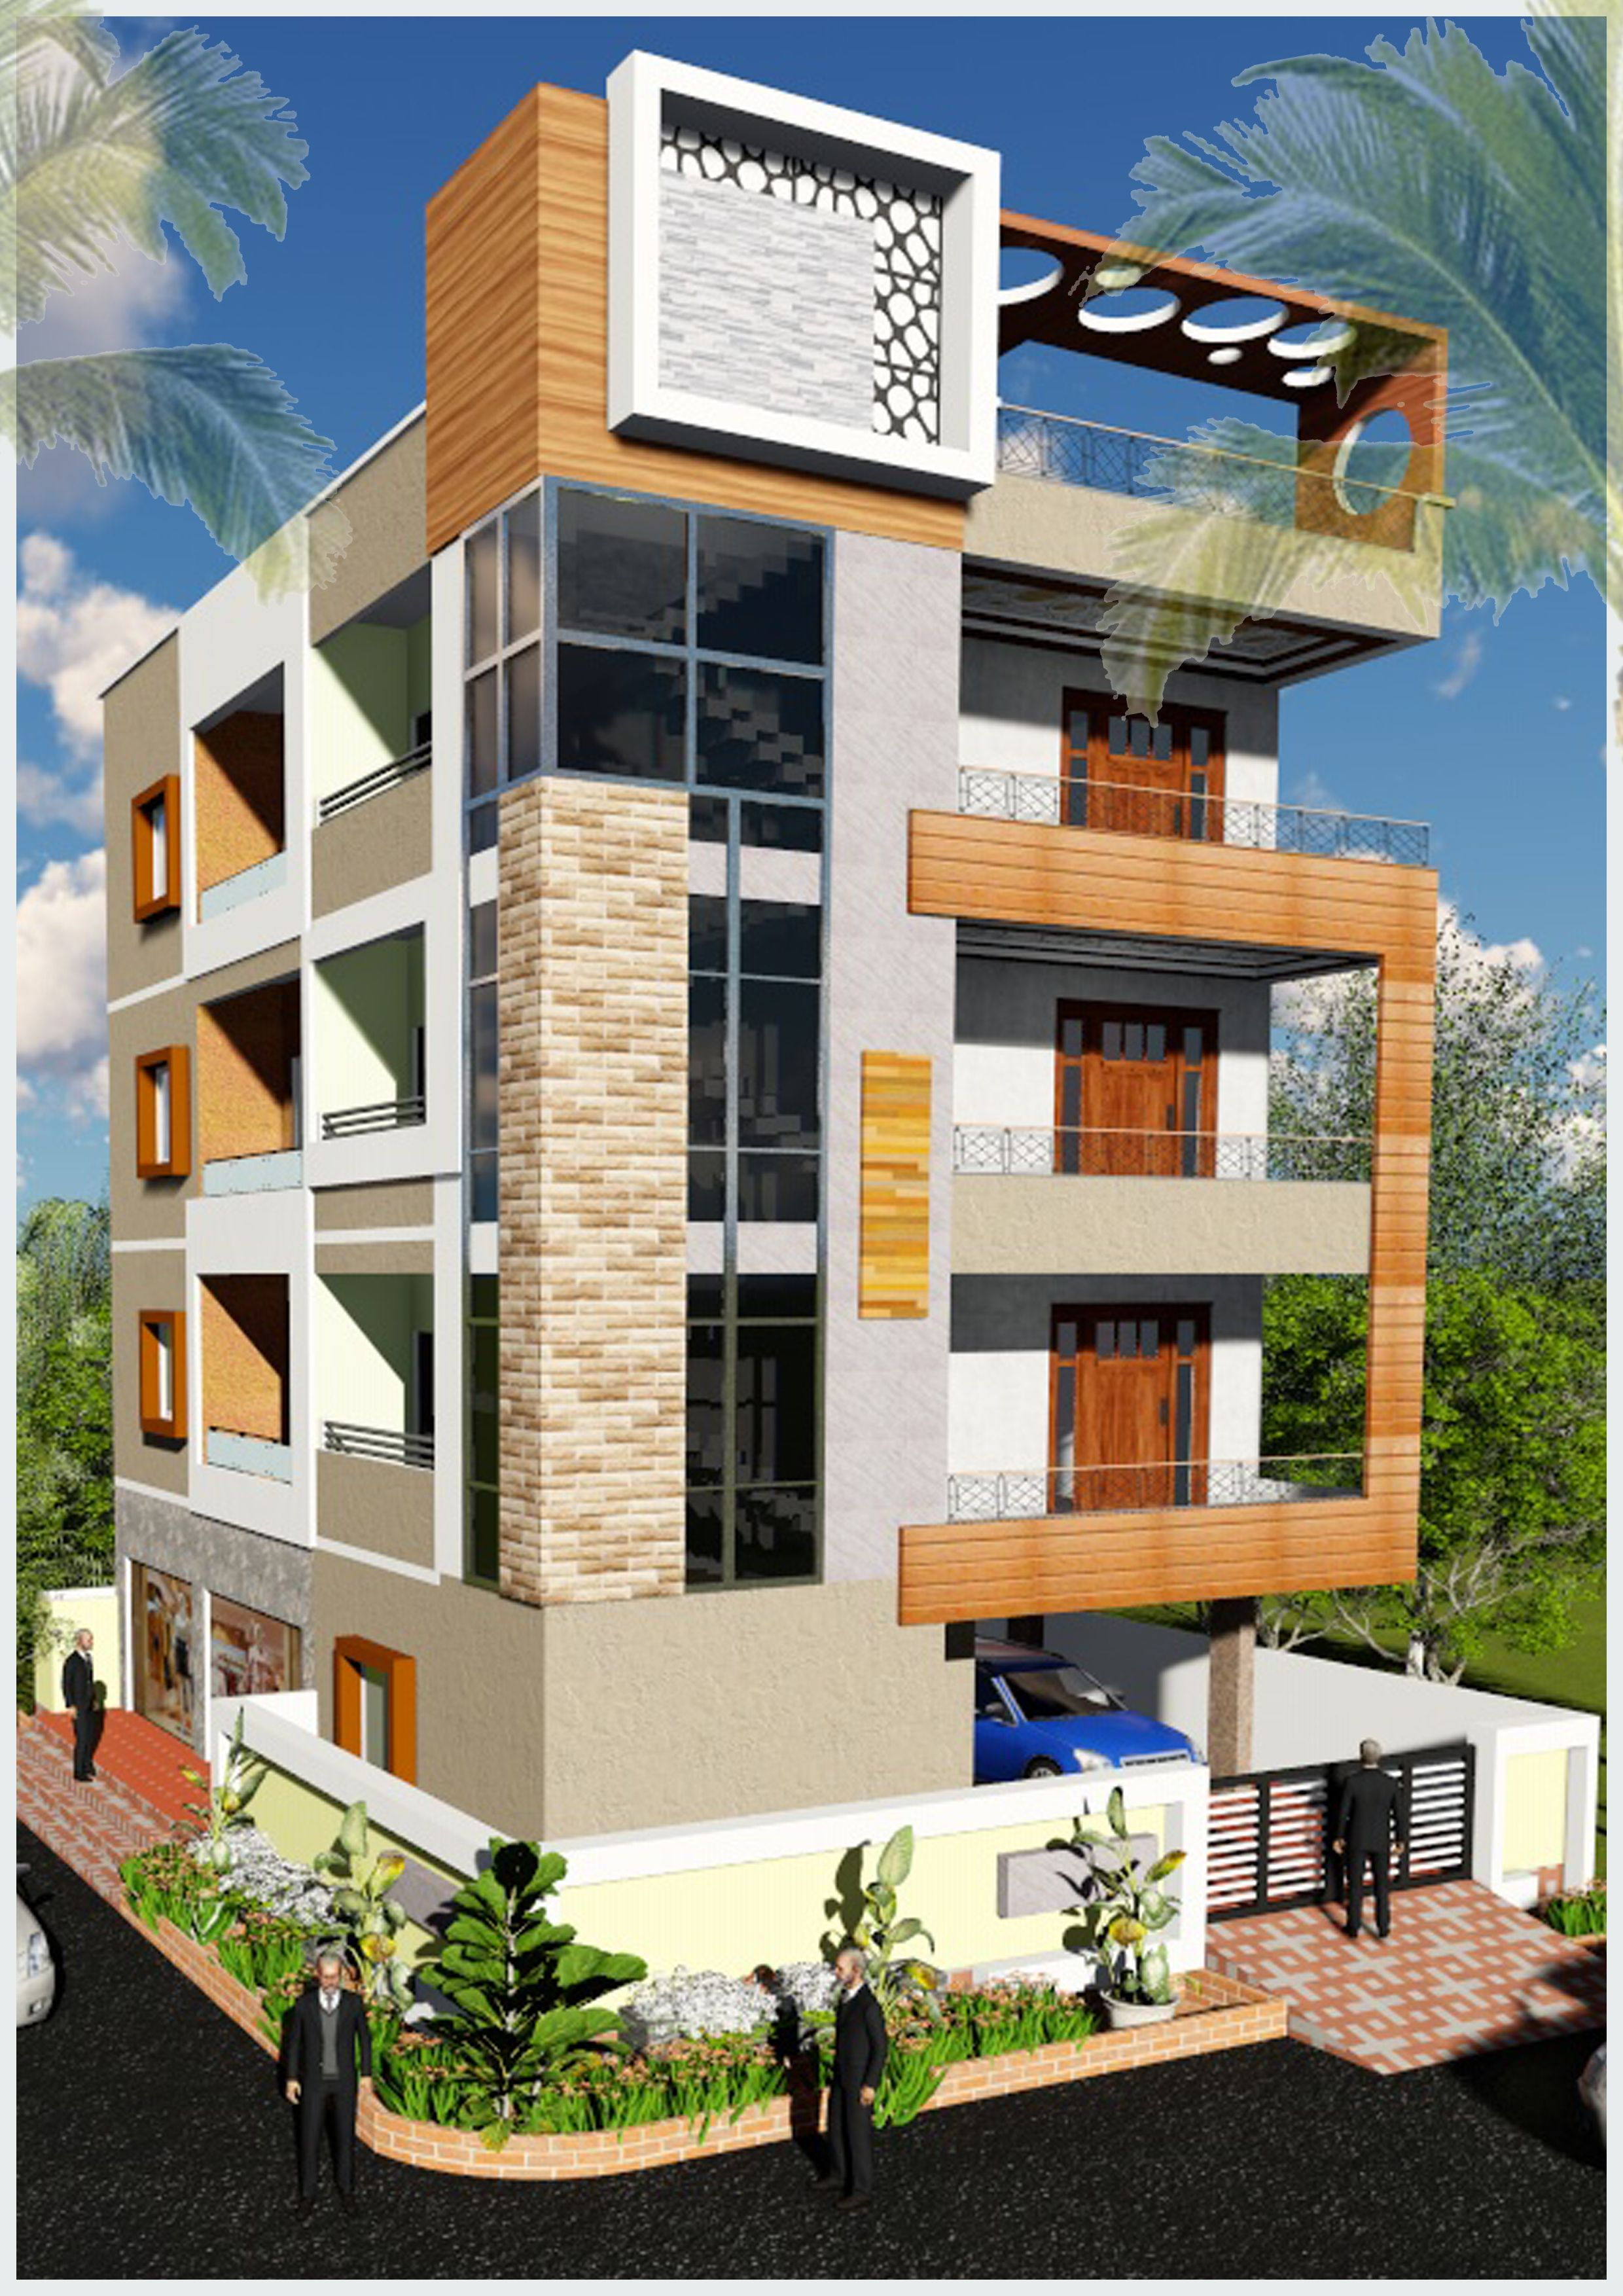 House Front Design Small House Elevation Design Architectural House Plans: House Front Design, Simple House Design, Exterior Design